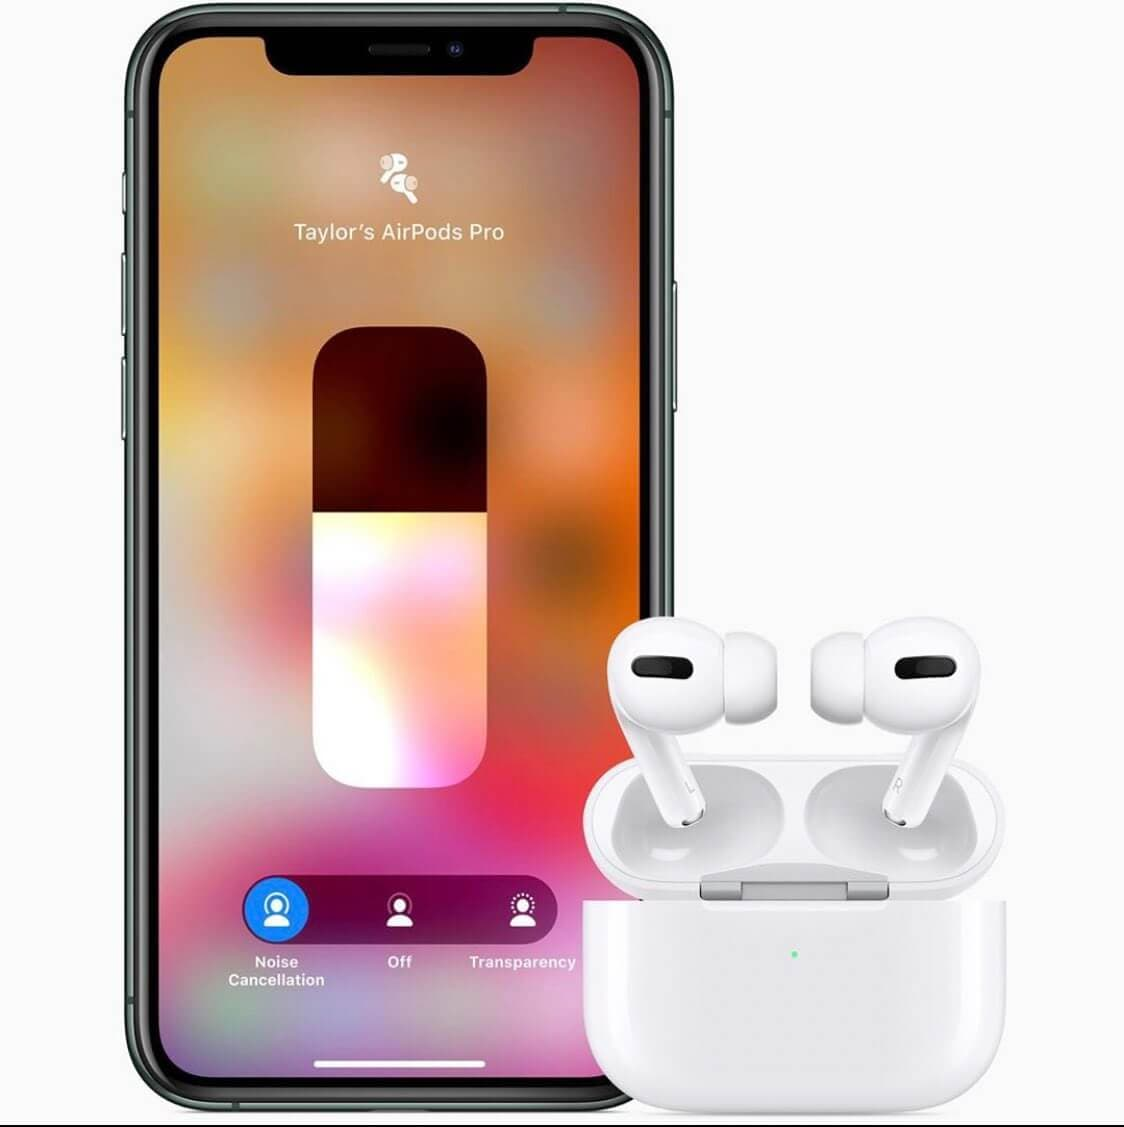 How to wear AirPods Pro properly